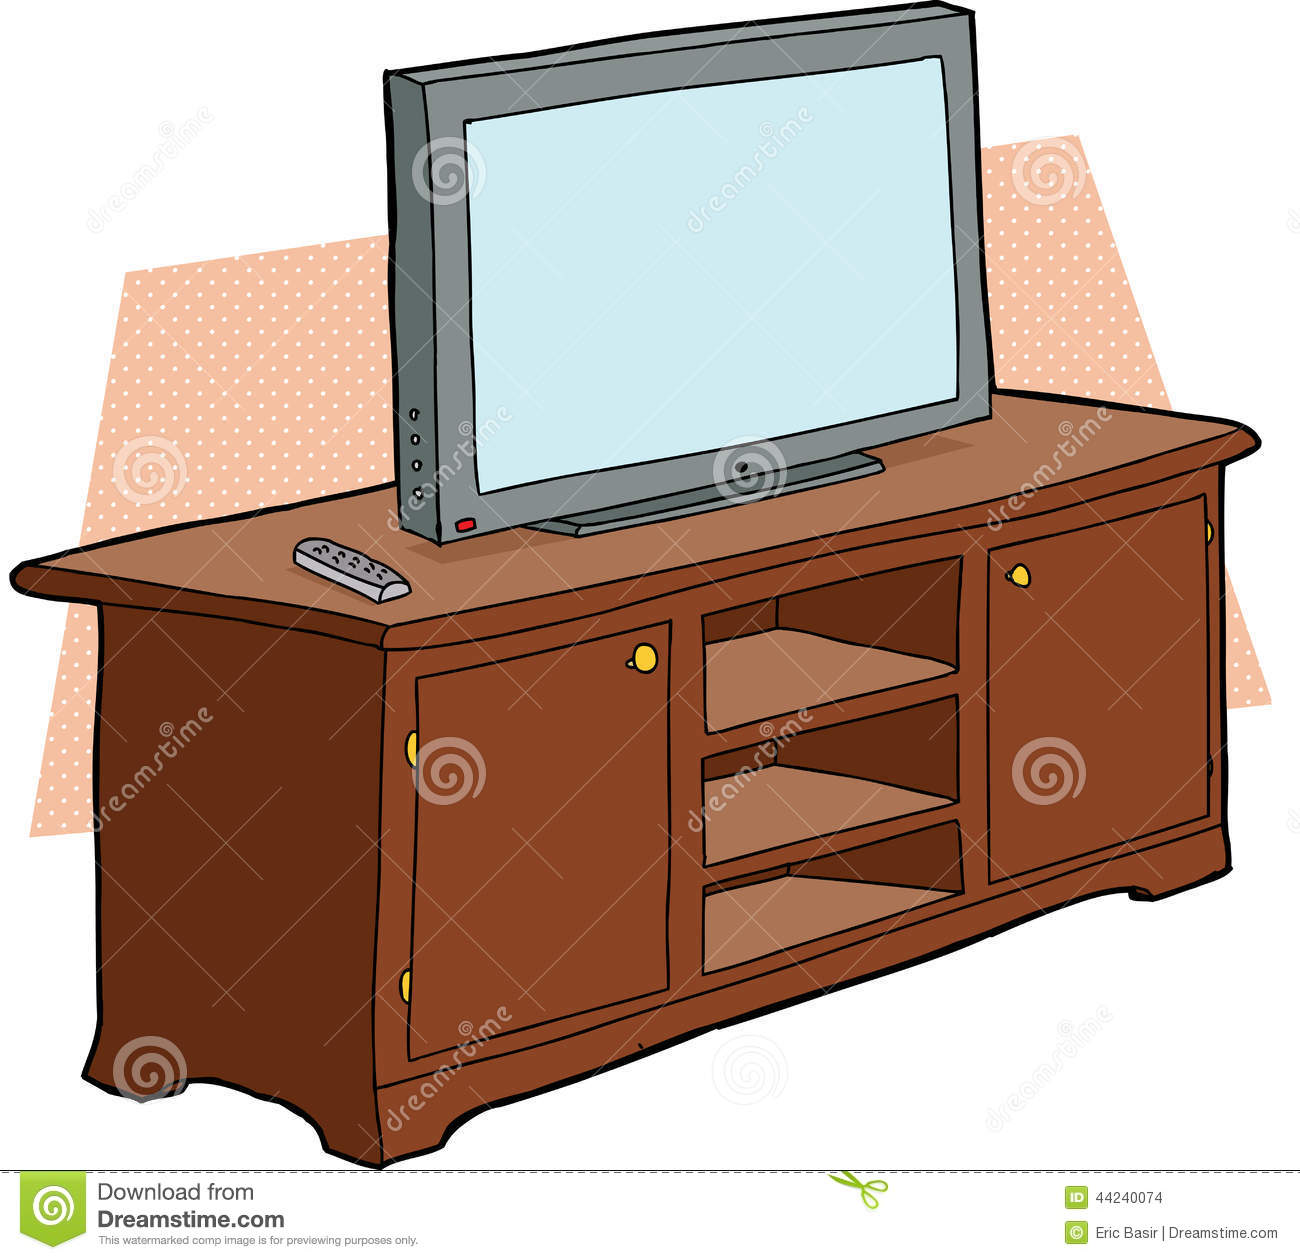 TV On Wooden Console Stock Vector - Image: 44240074